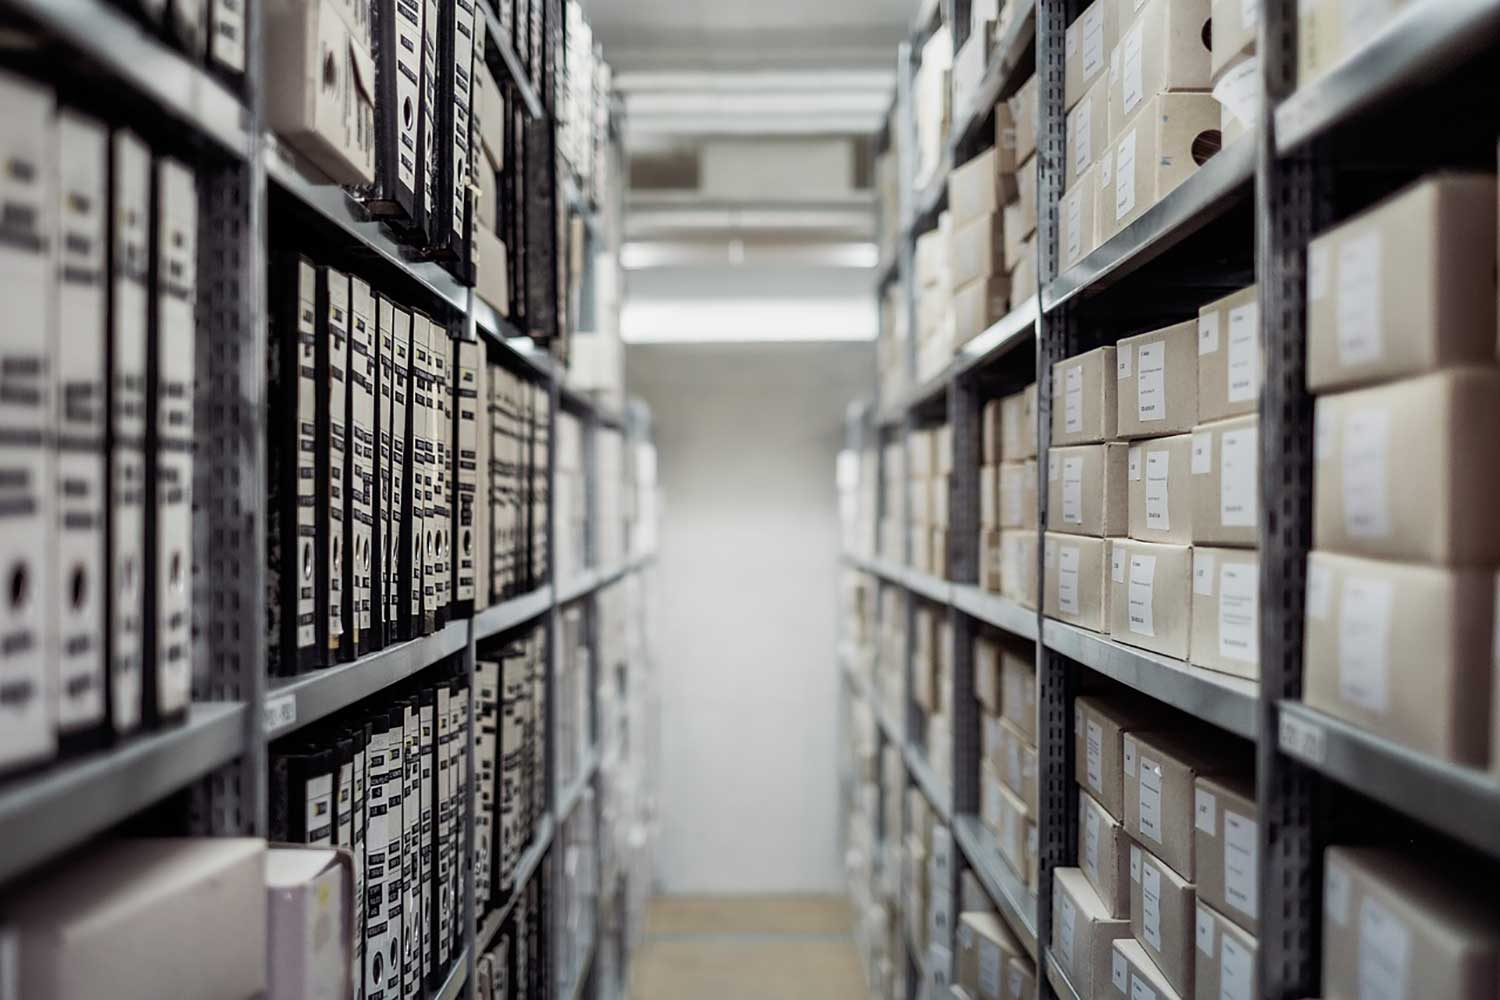 Archive boxes on shelves